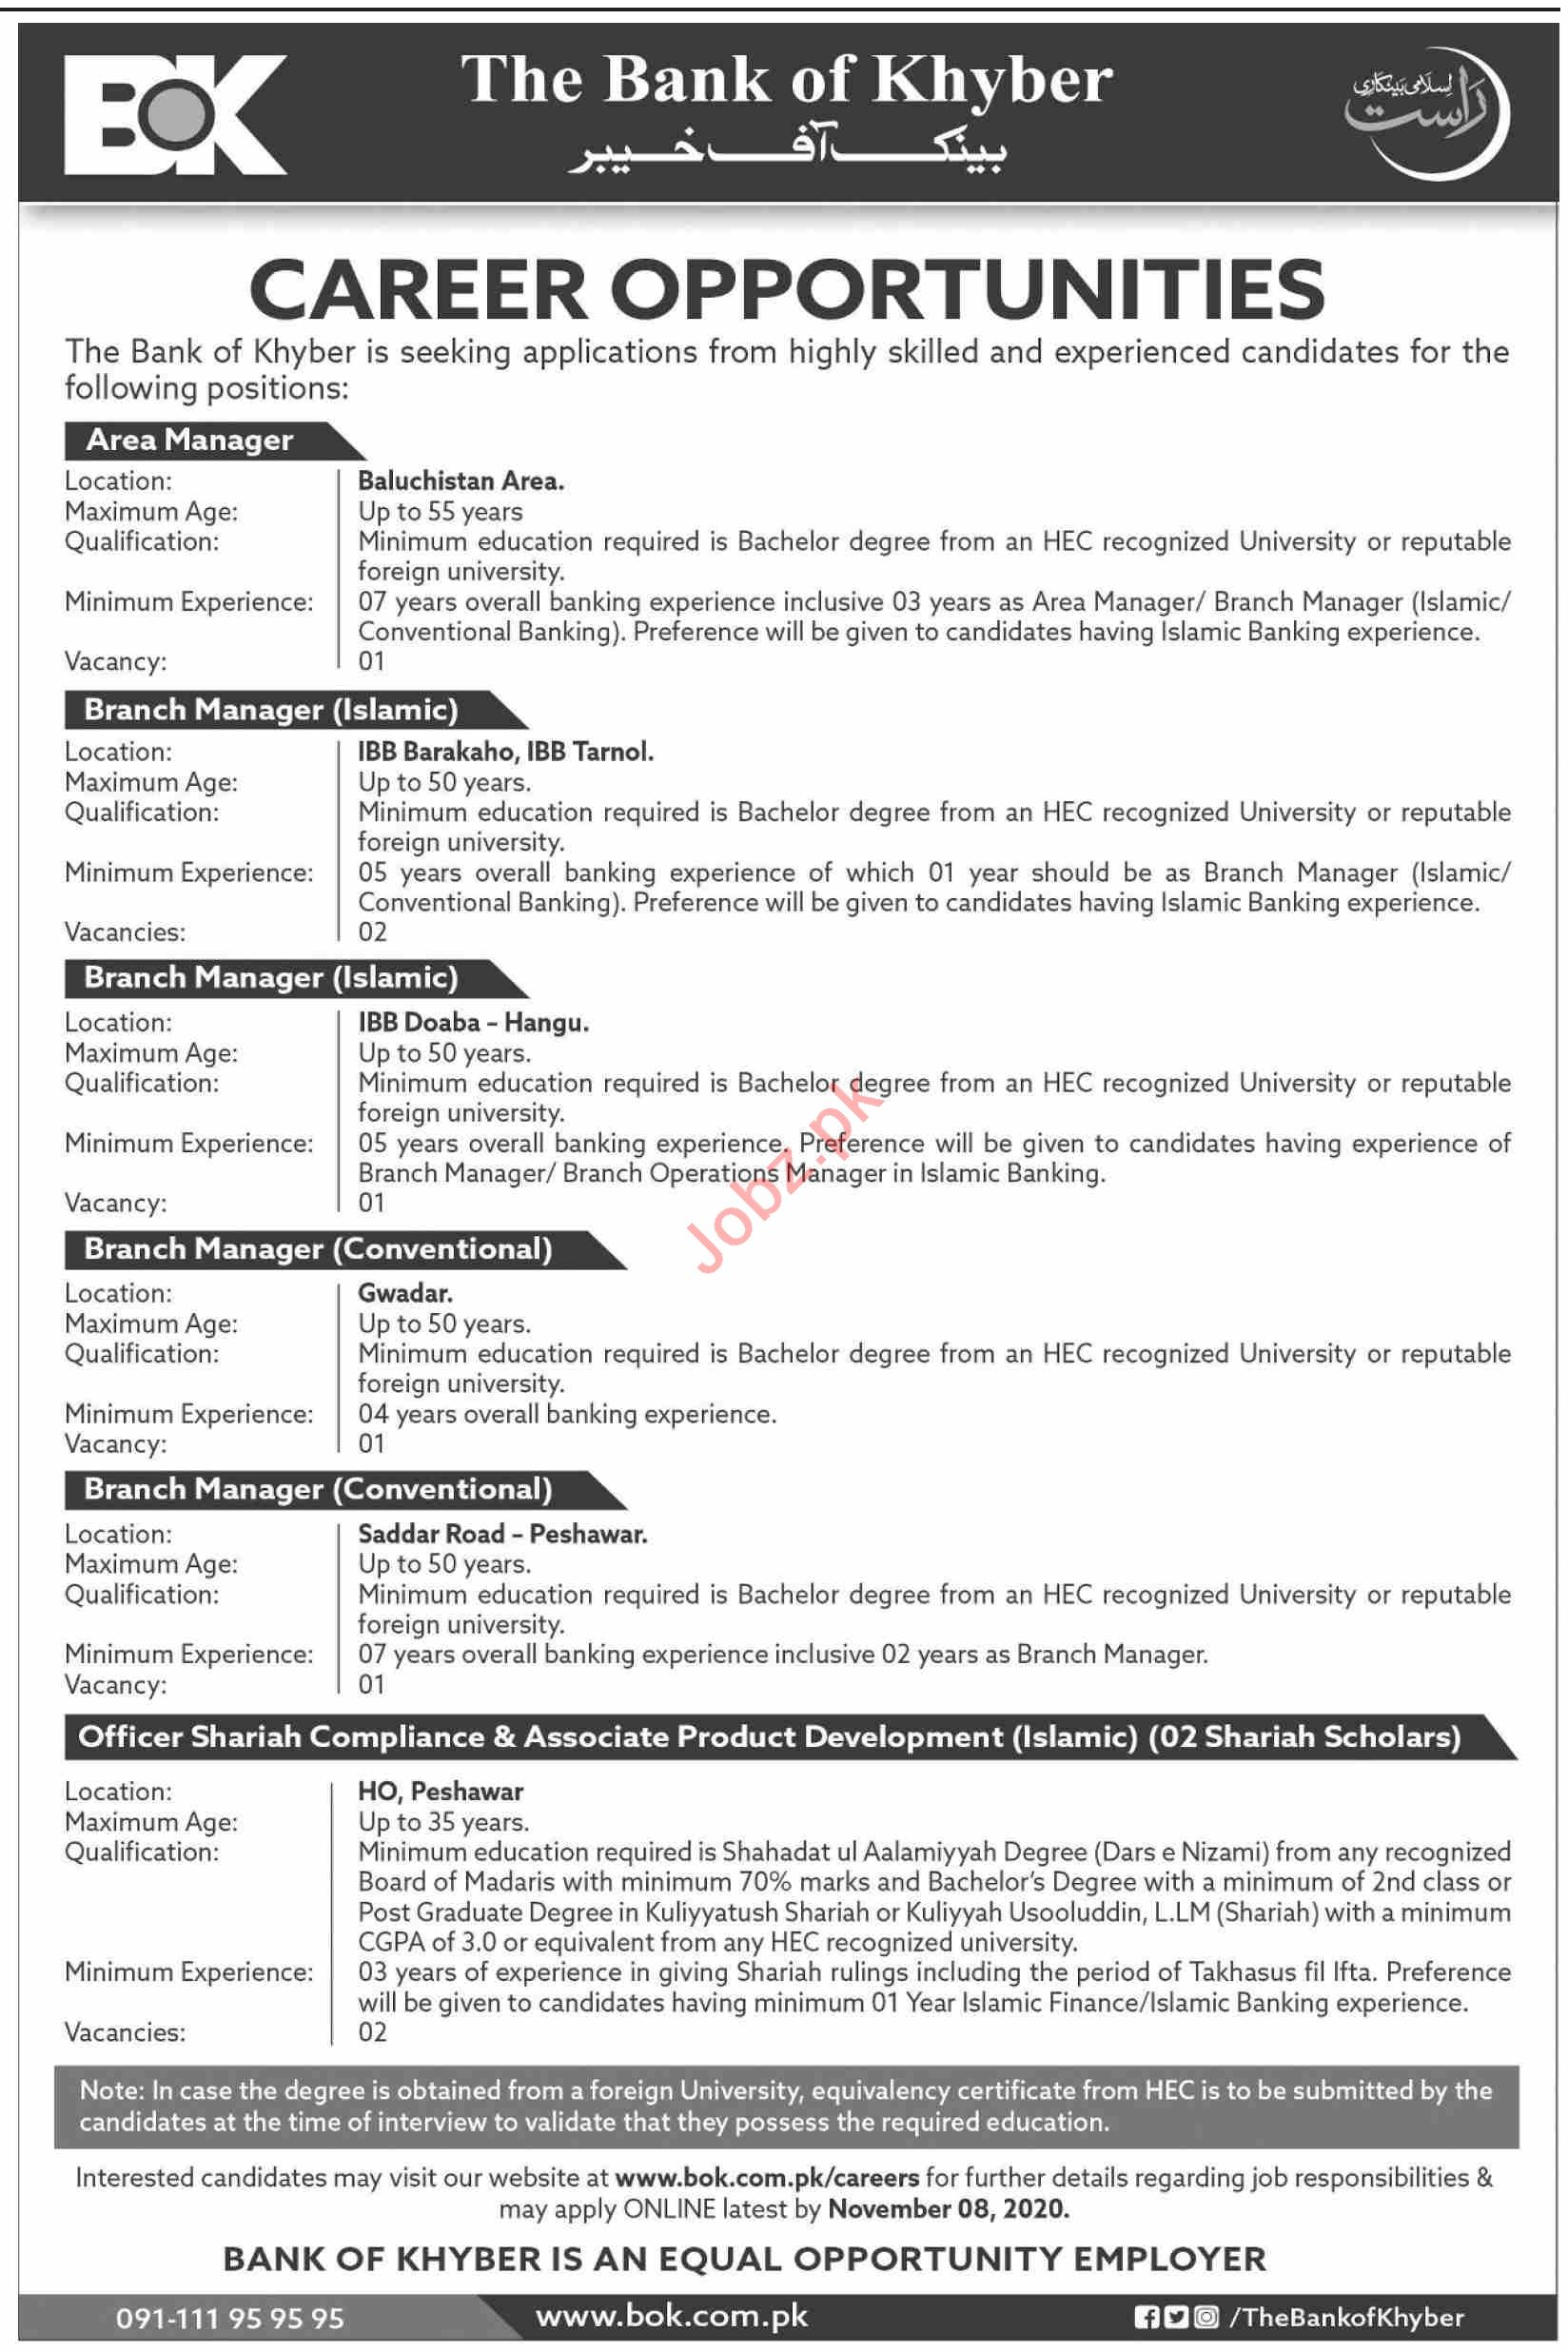 The Bank of Khyber BOK Jobs 2020 for Area Manager